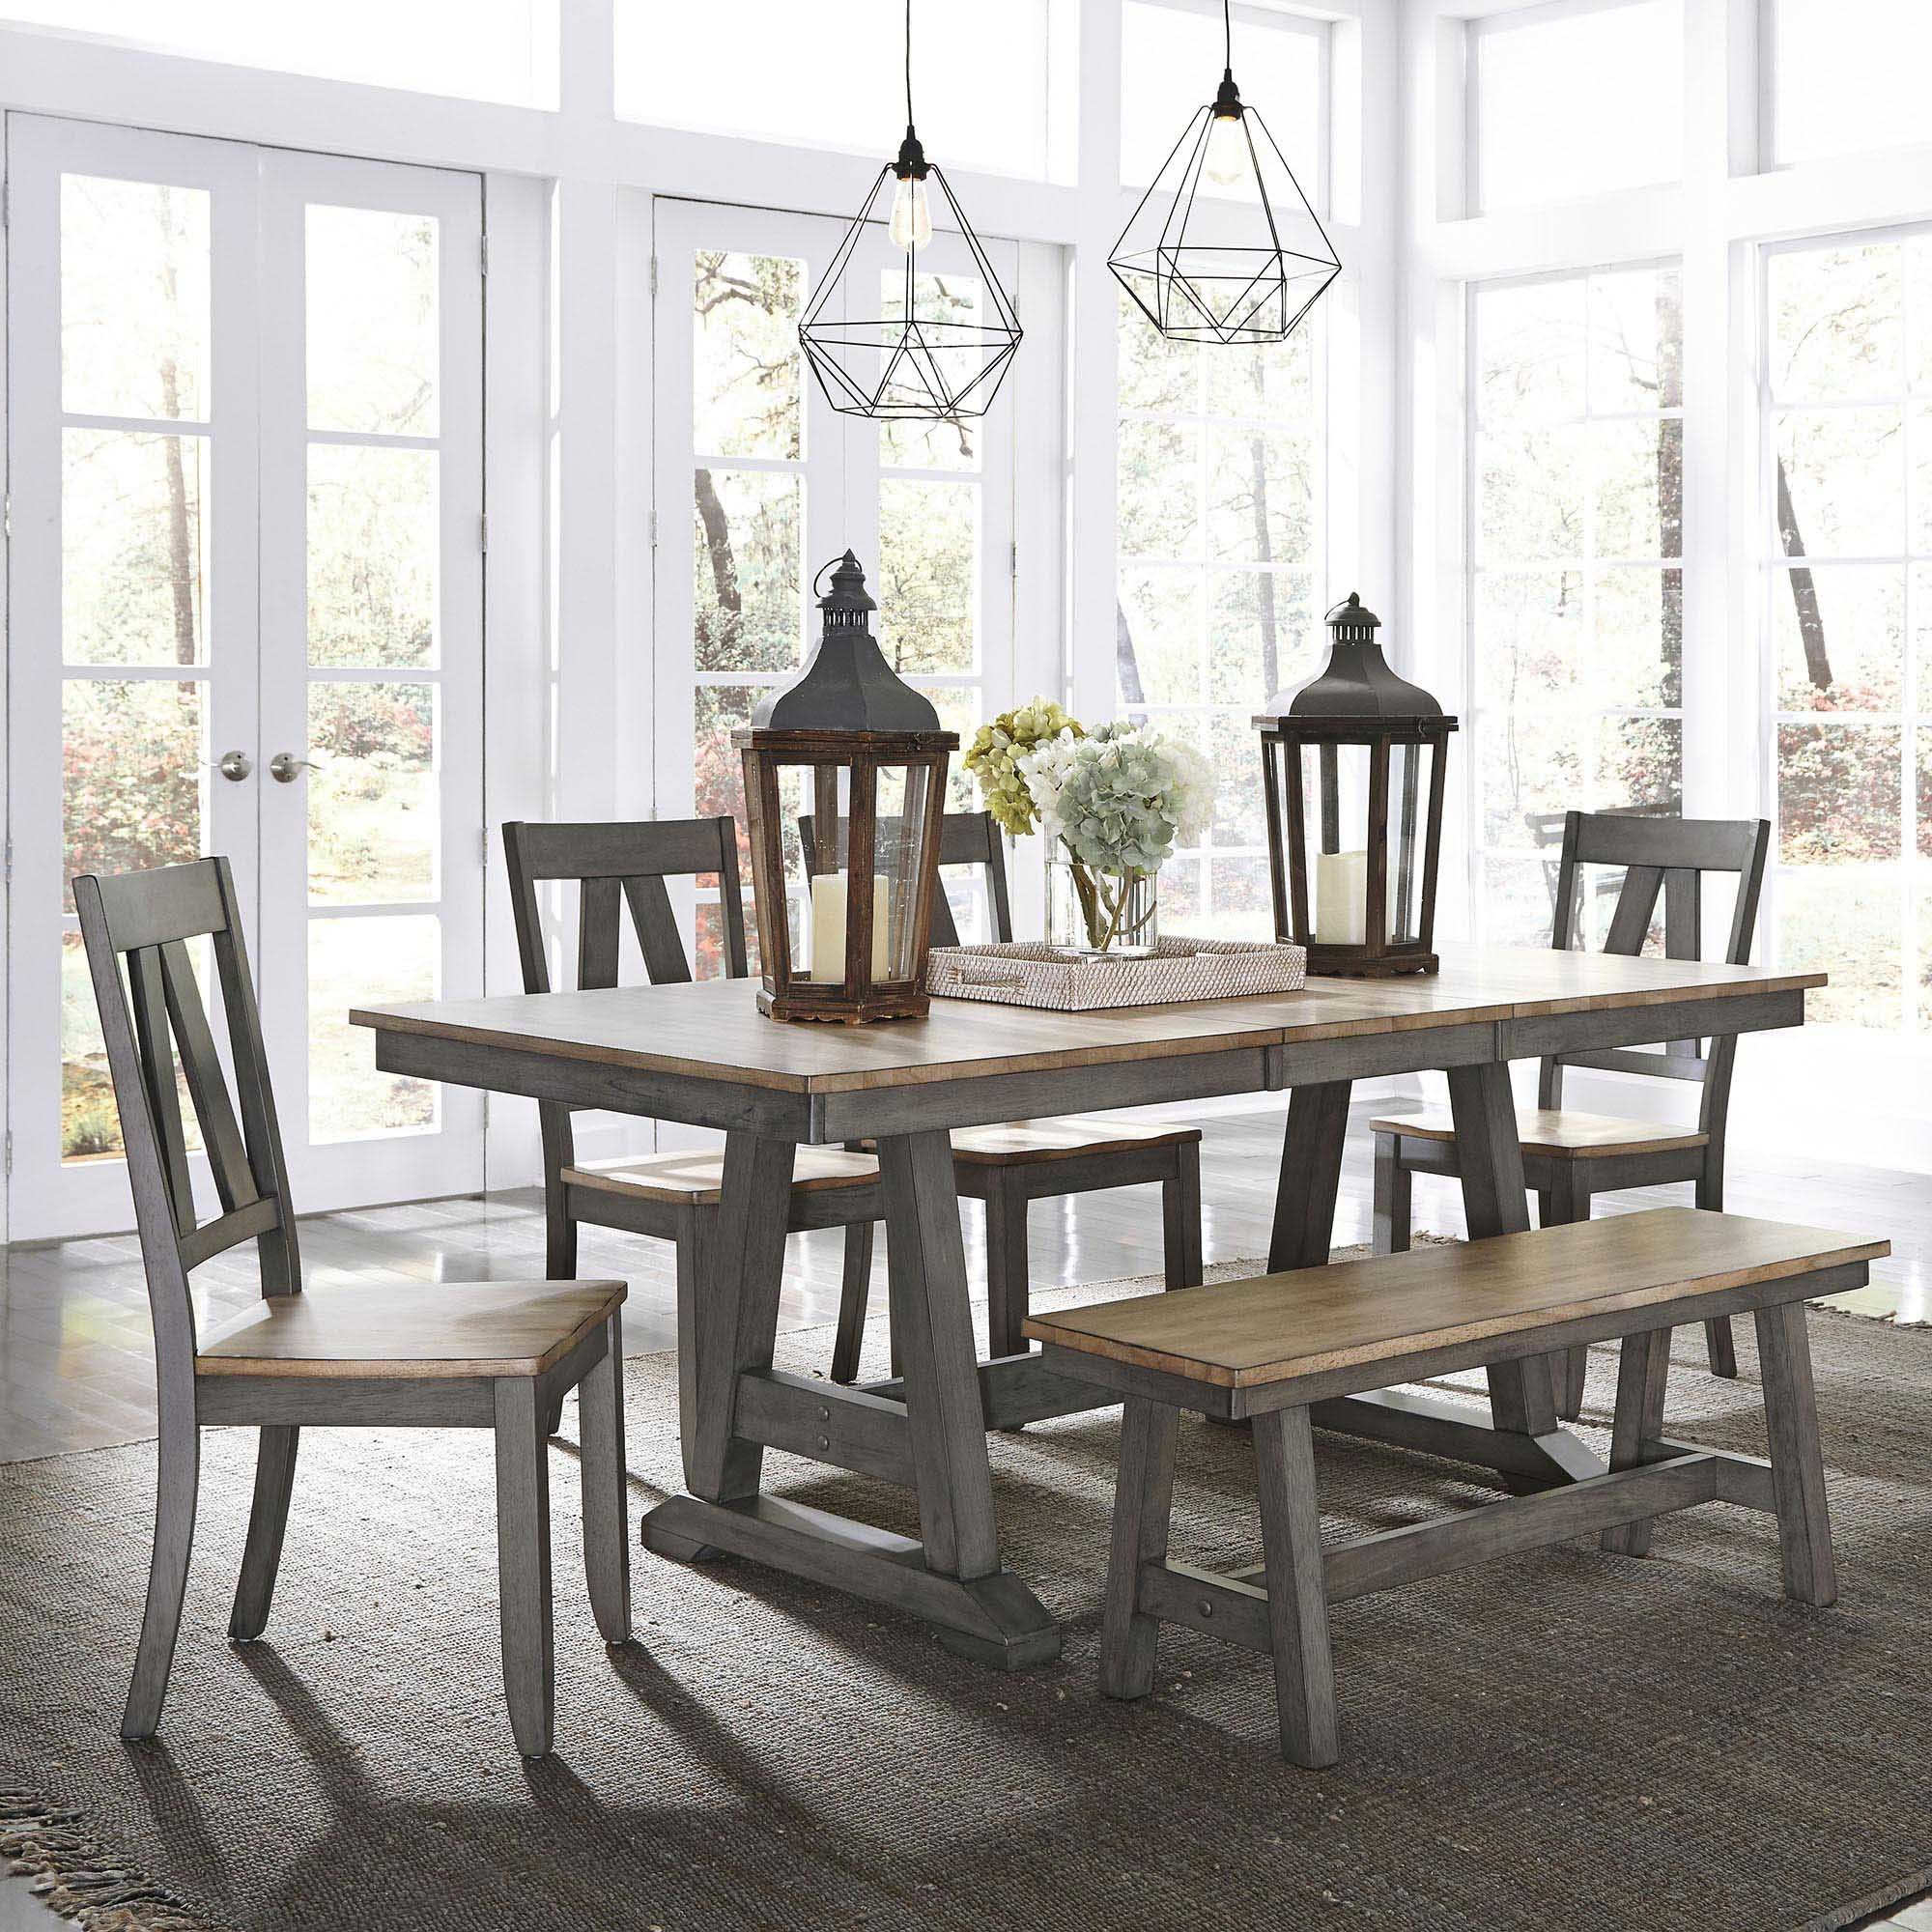 Kruger 6 Piece Extendable Solid Wood Dining Set Inside Most Up To Date Osterman 6 Piece Extendable Dining Sets (set Of 6) (Gallery 2 of 20)